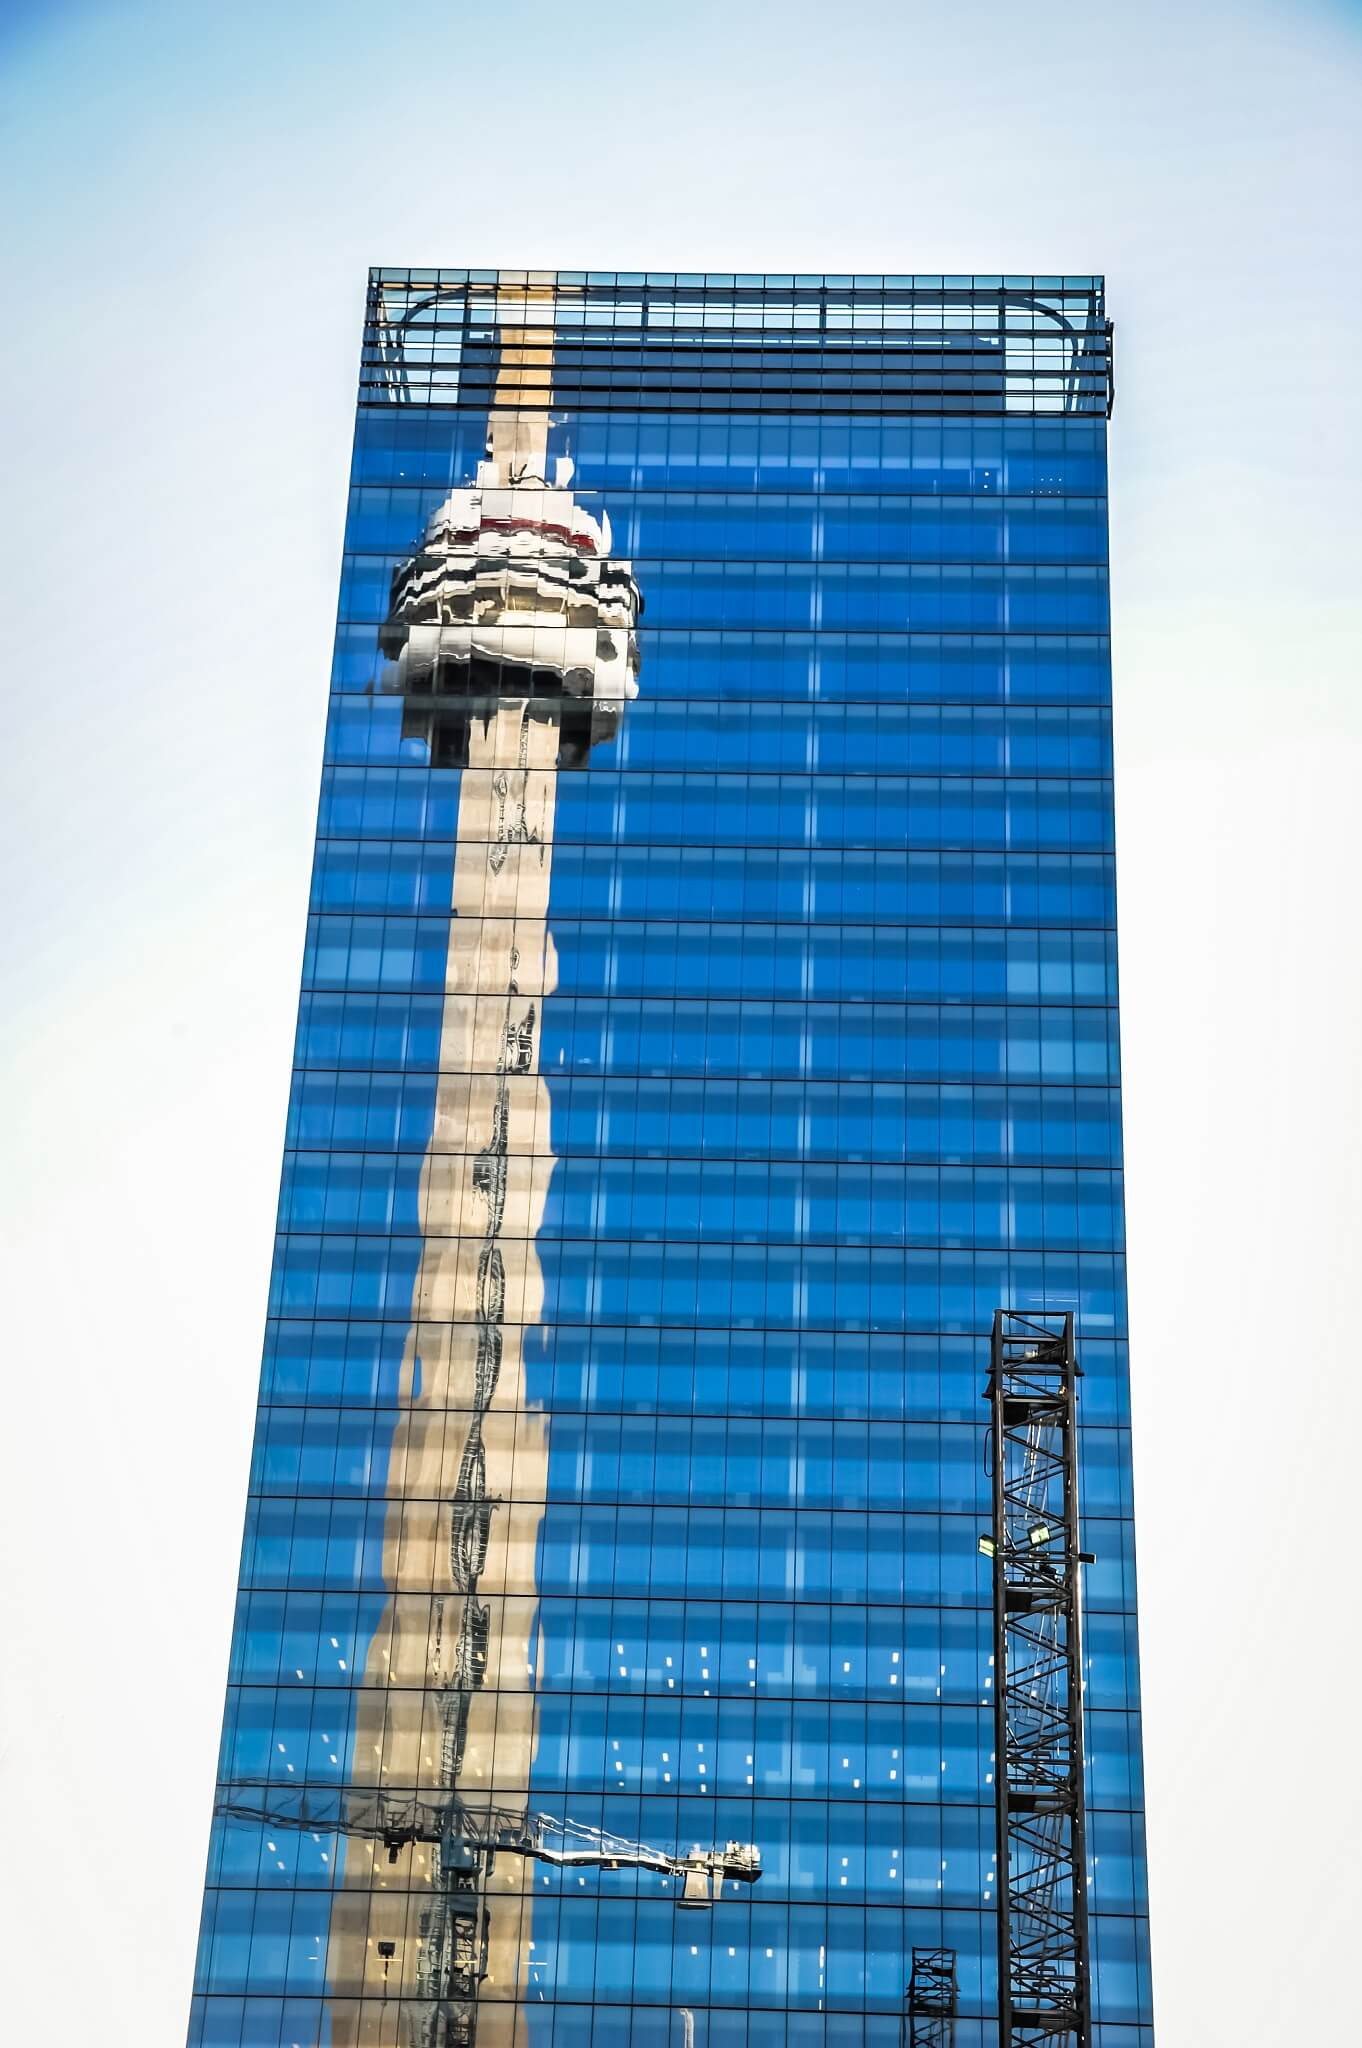 Reflections of the CN Tower